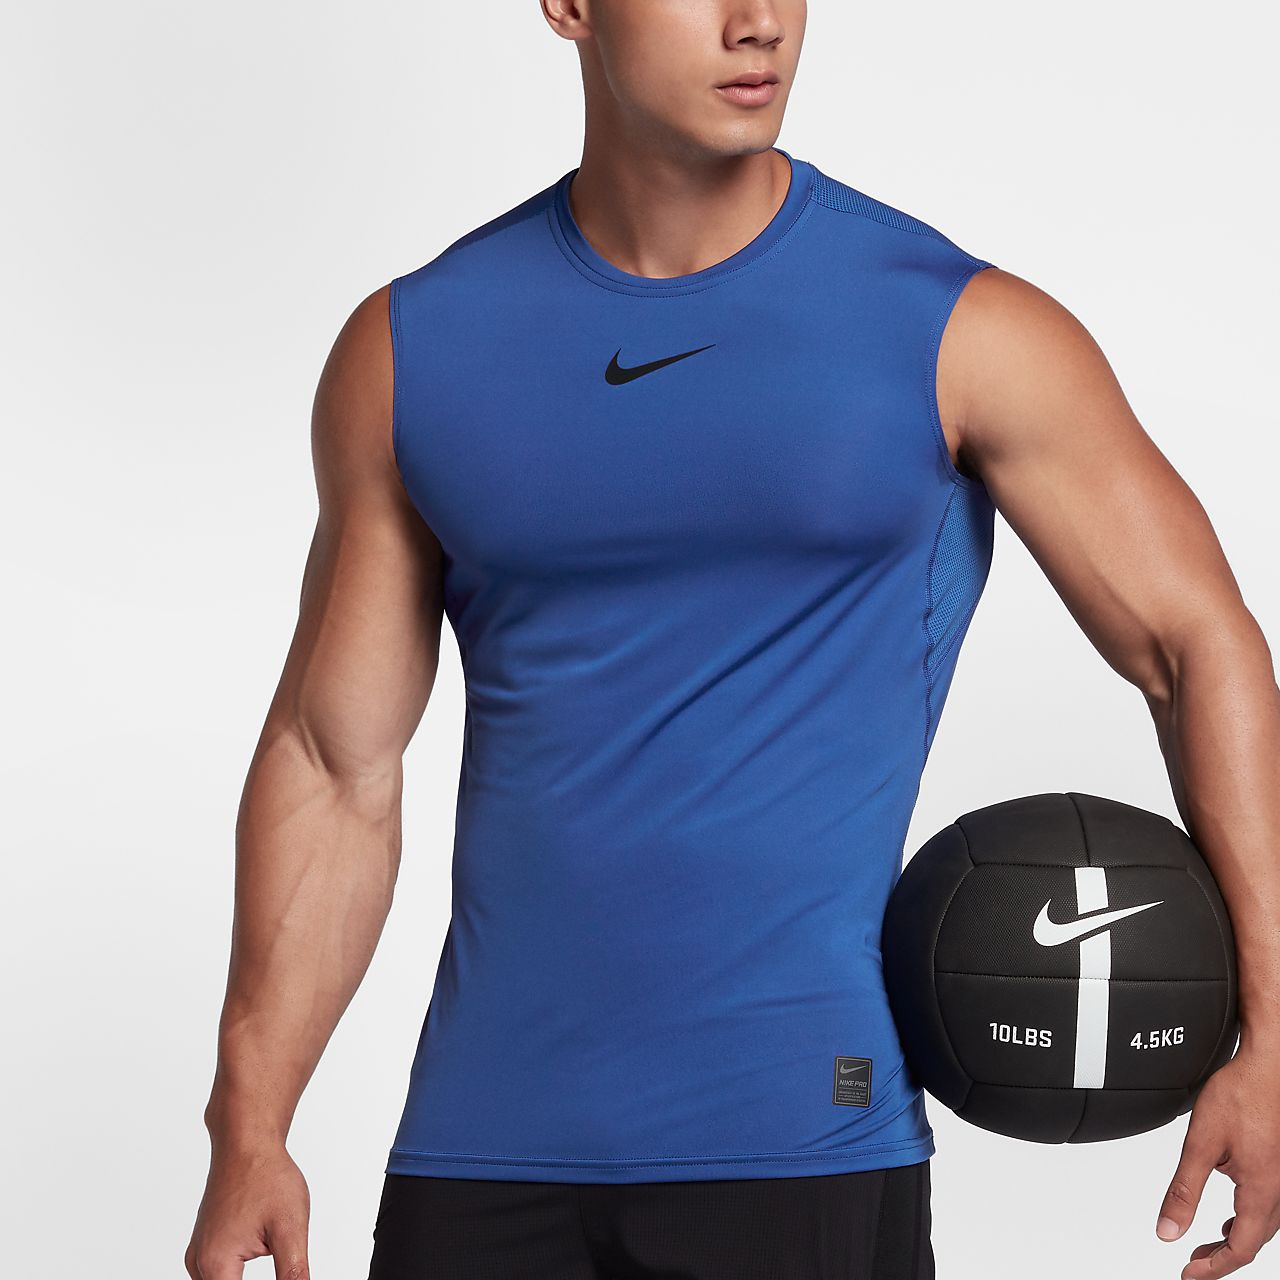 8d88f4af46b7f Nike Pro Men's Sleeveless Fitted Top. Nike.com